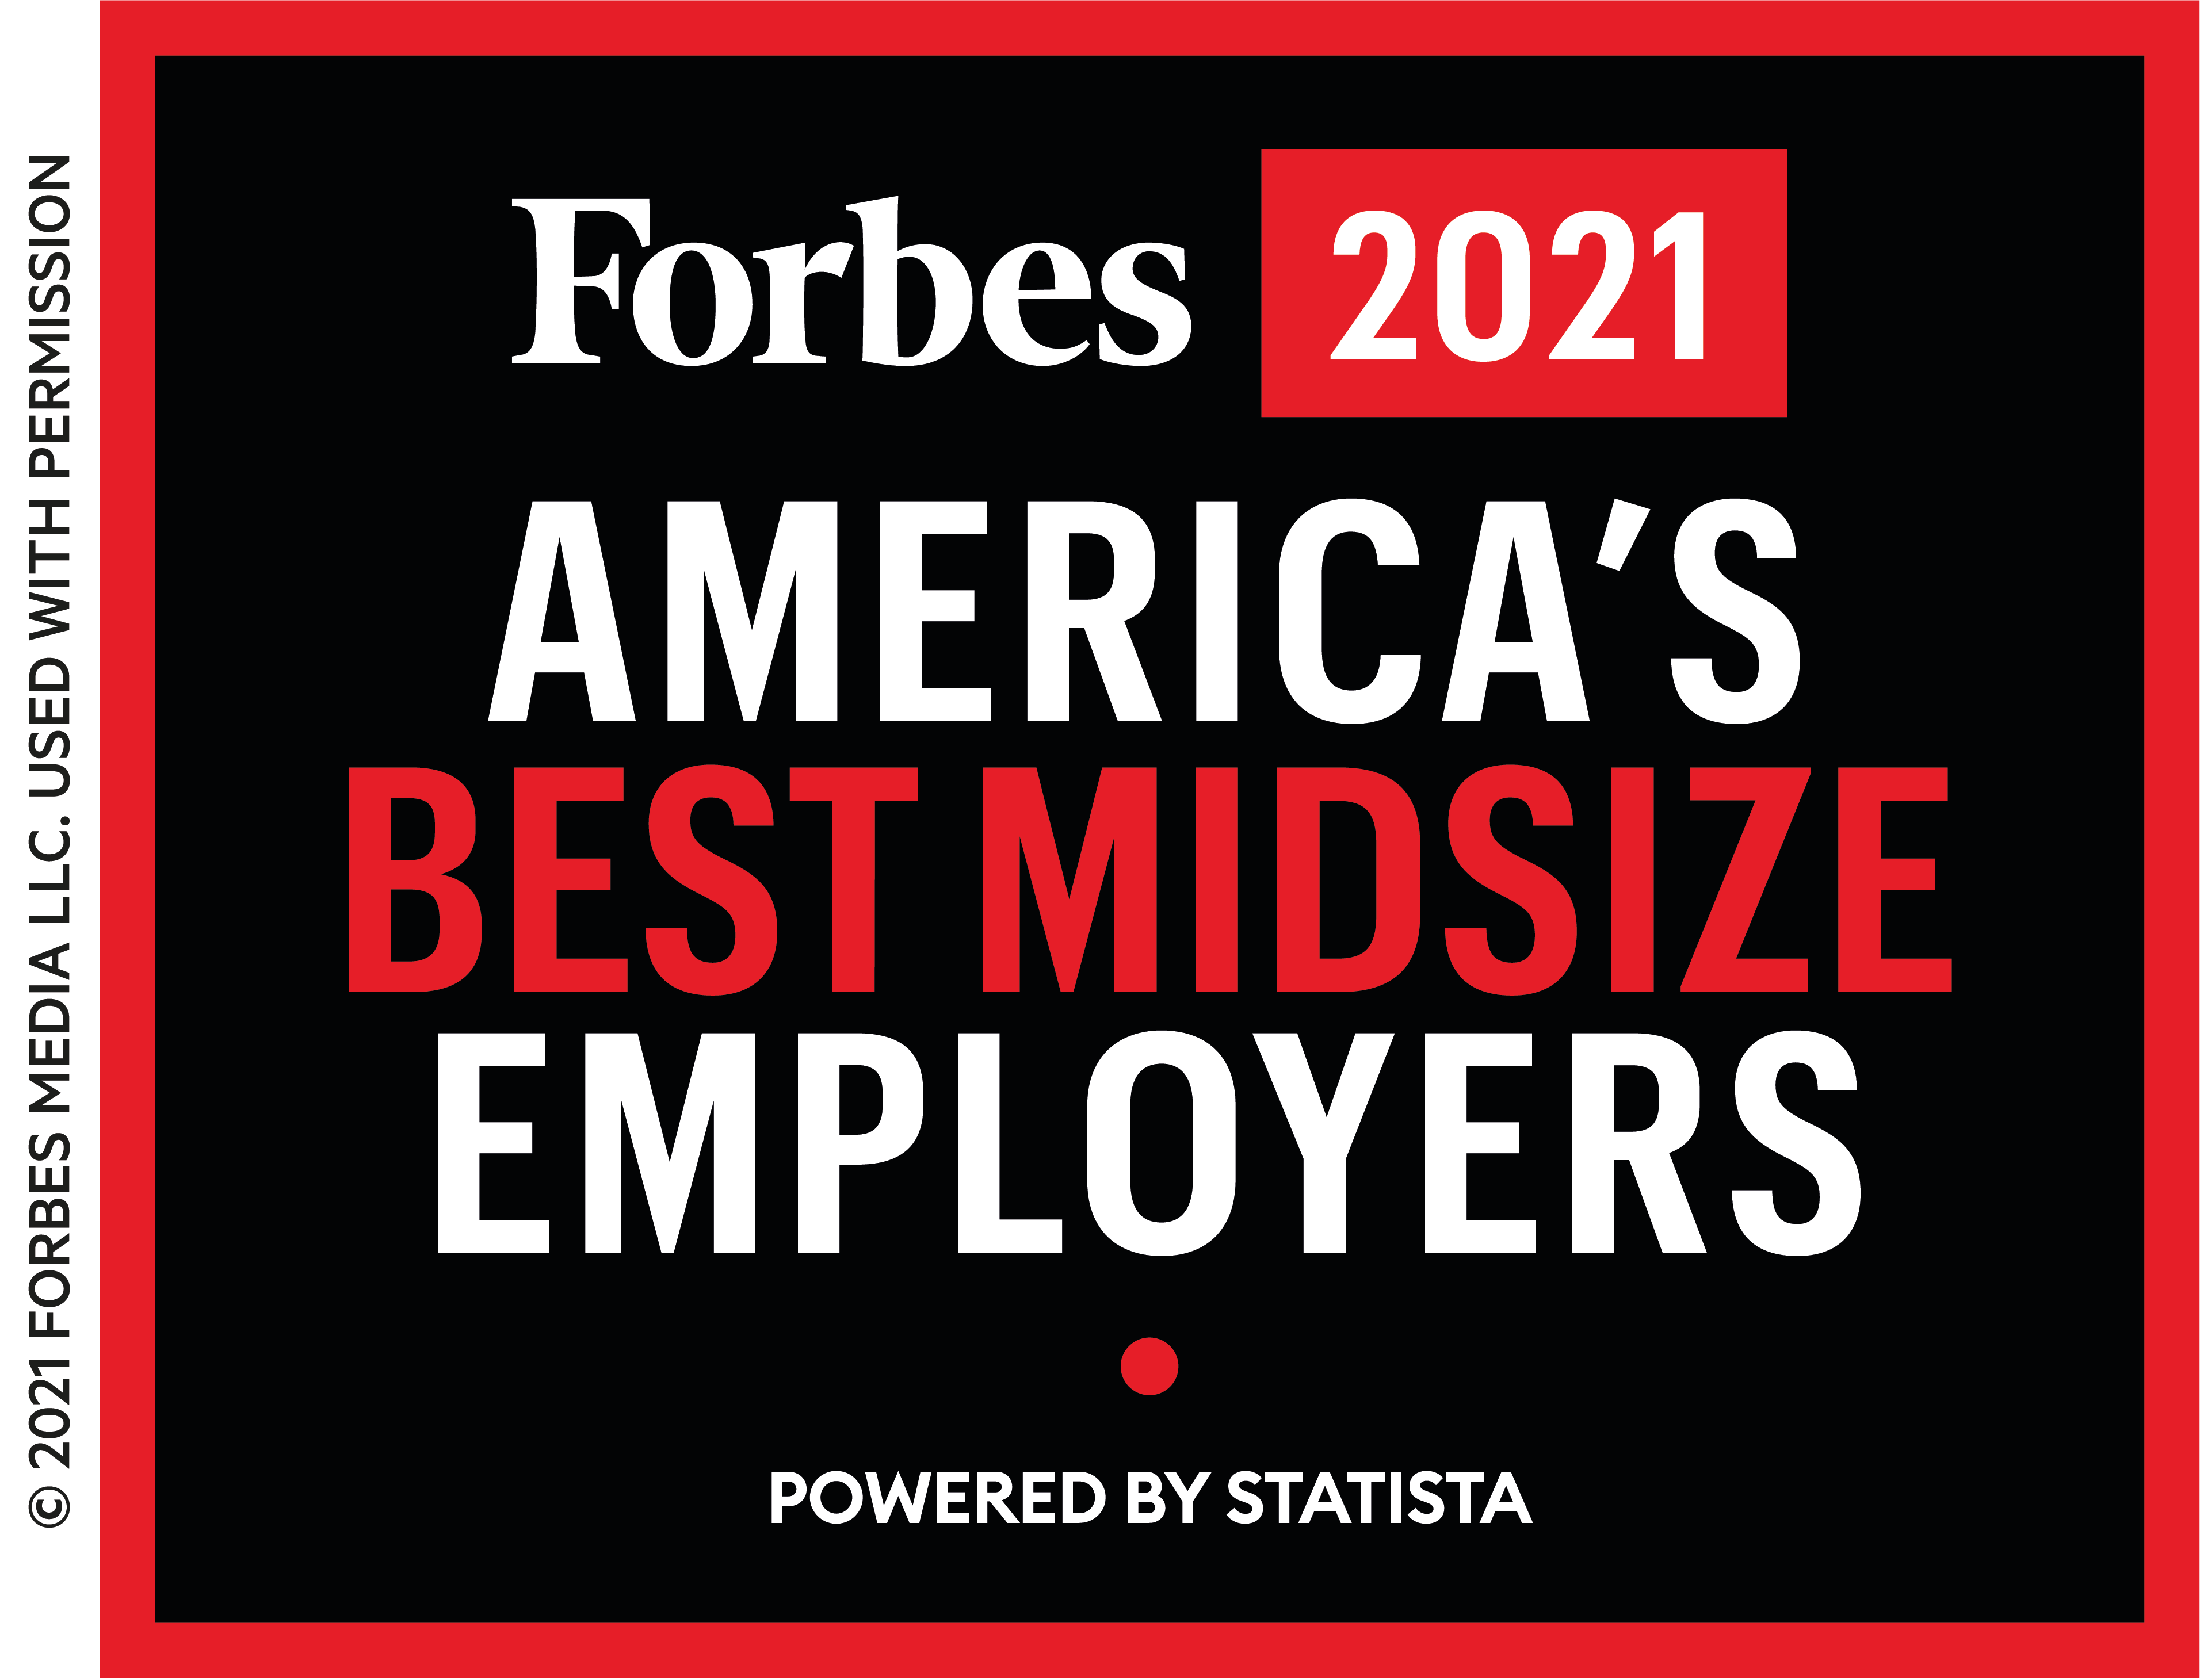 Forbes 2021 America